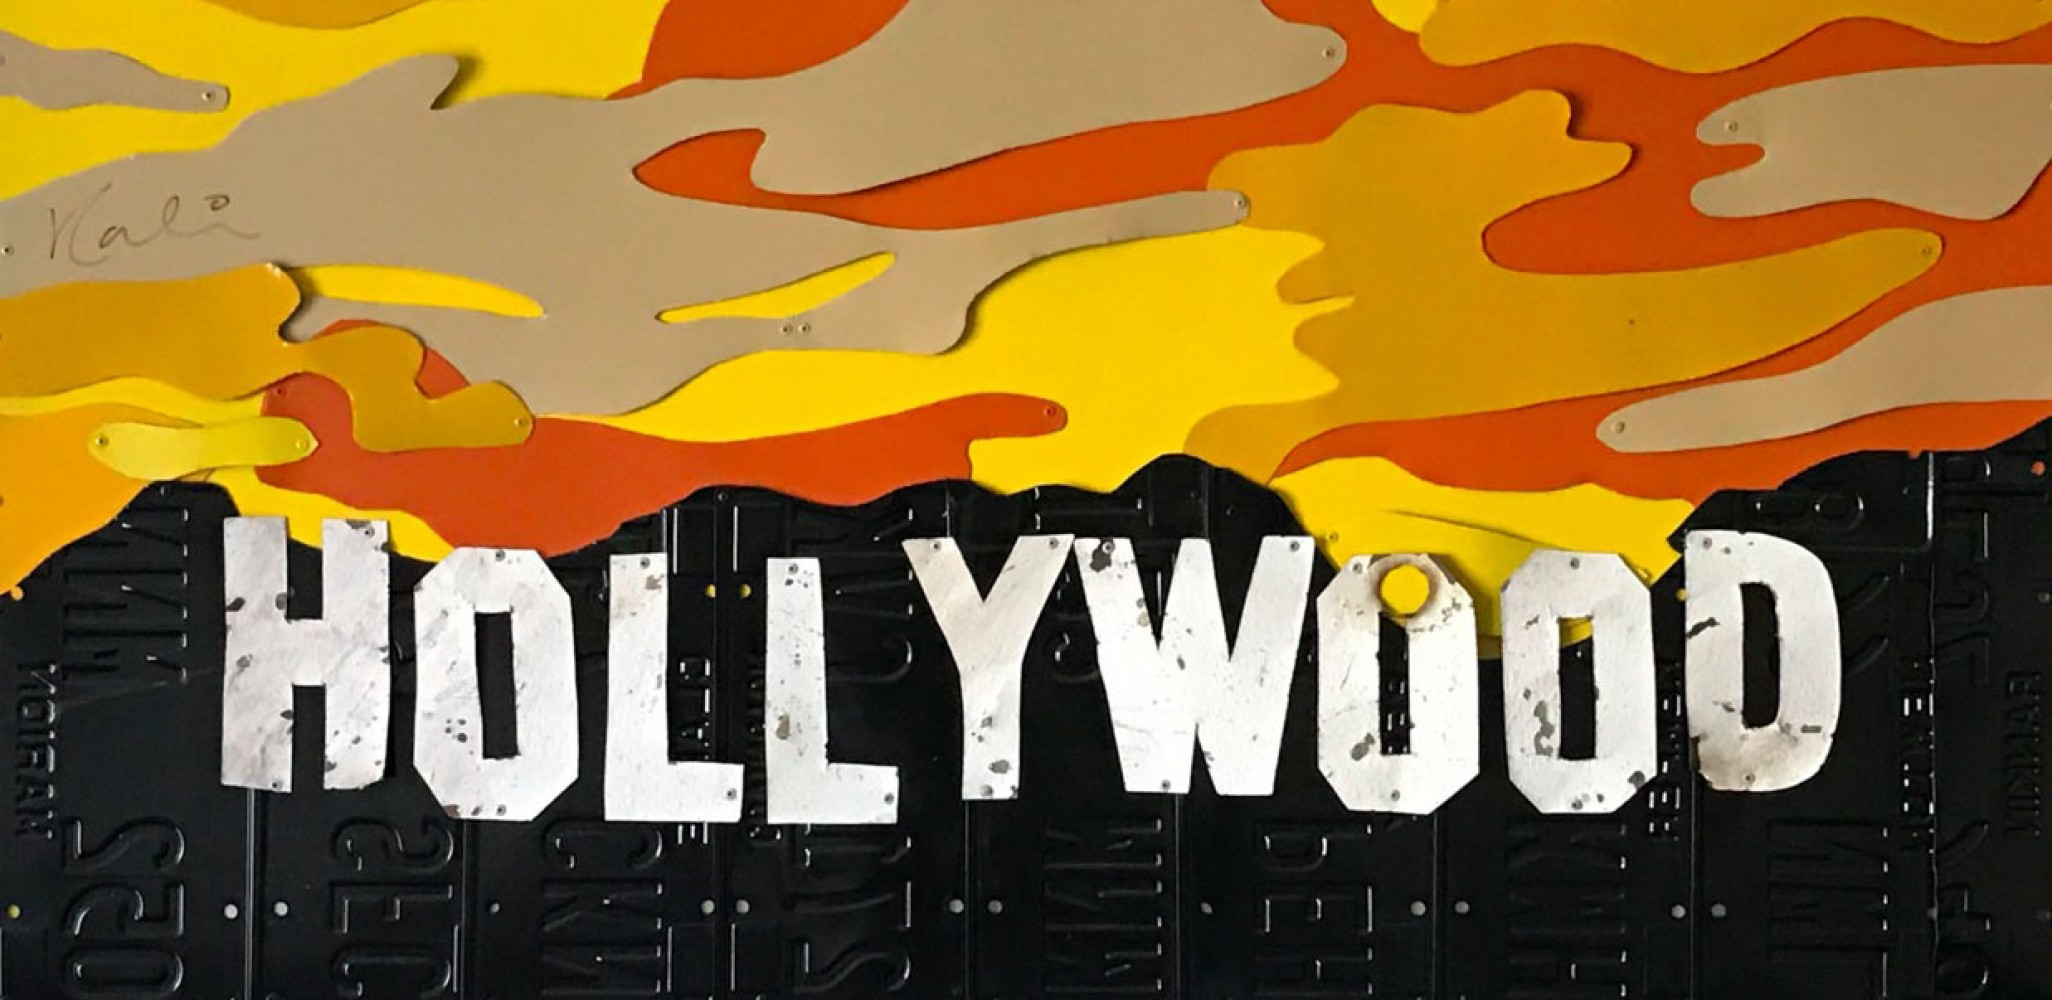 Old Hollywood Sign on License Plates 2007 25x48